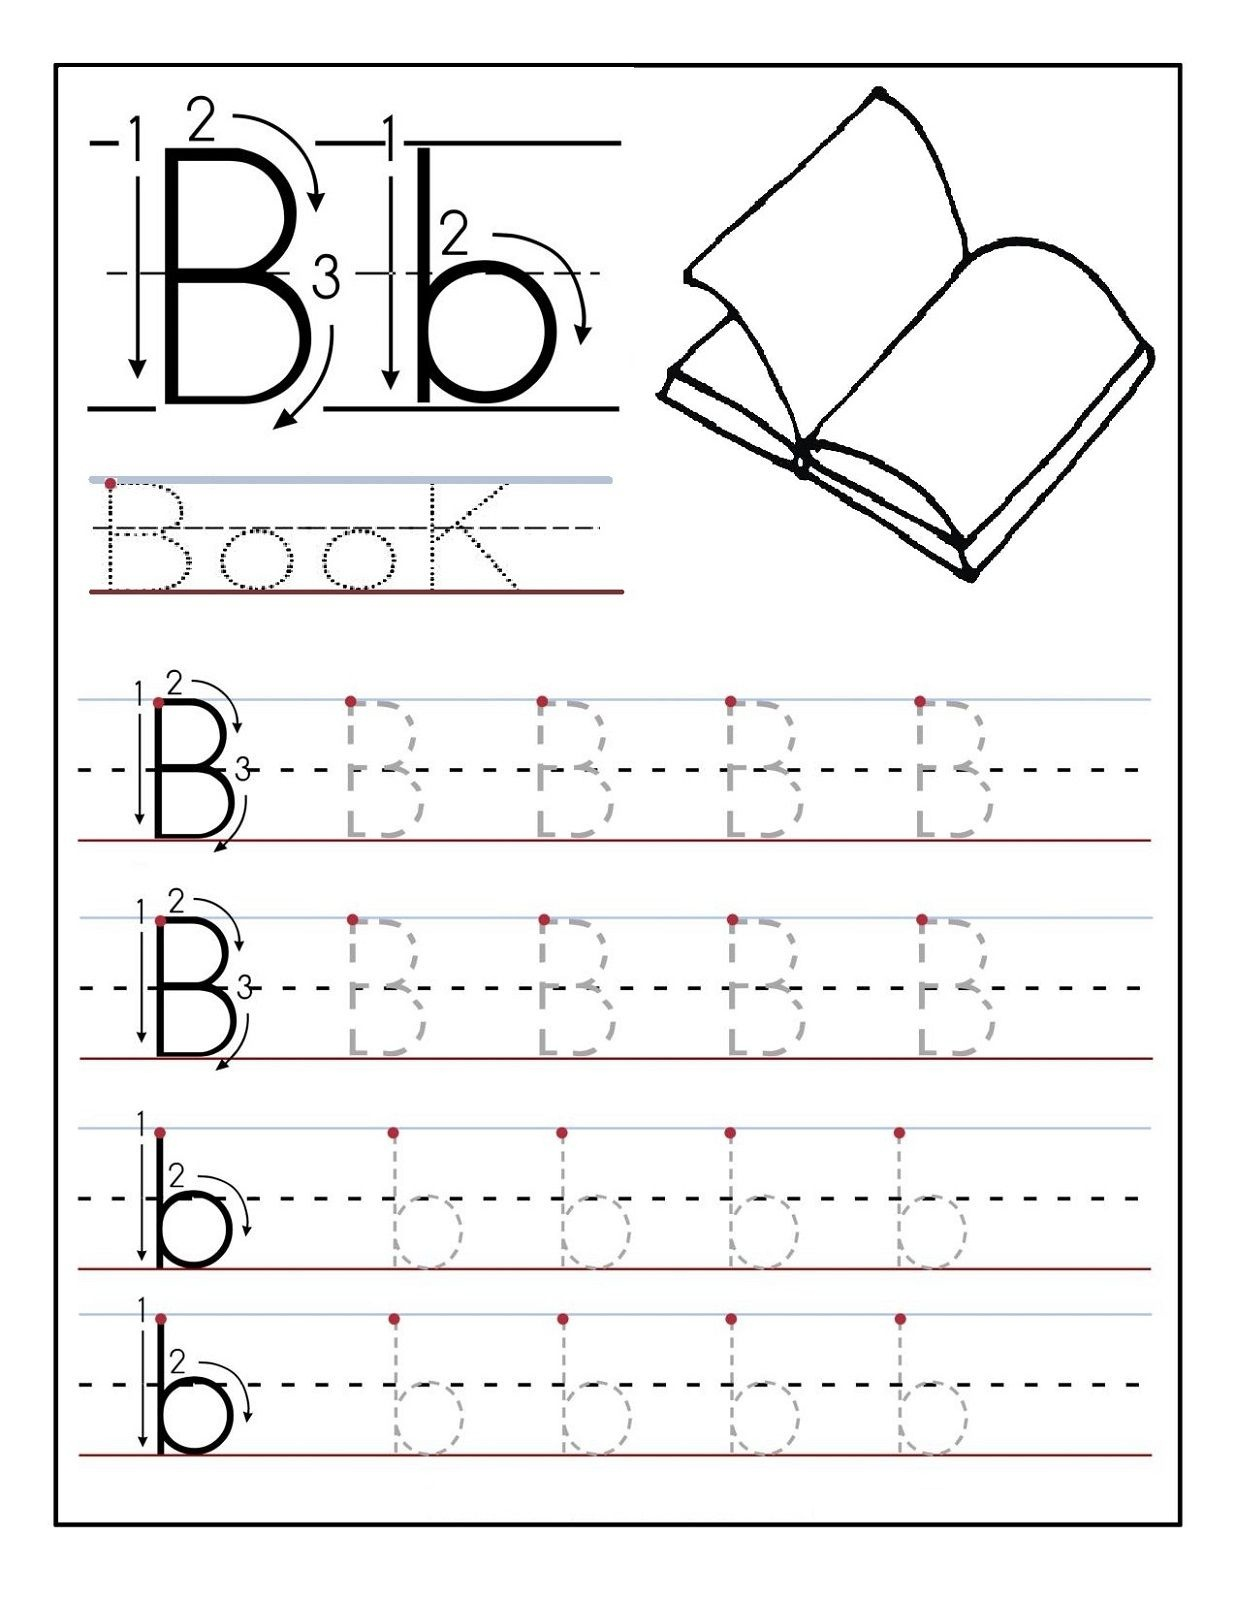 Traceable Letters Worksheet For Children Golden Age Activities - Free Printable Traceable Letters